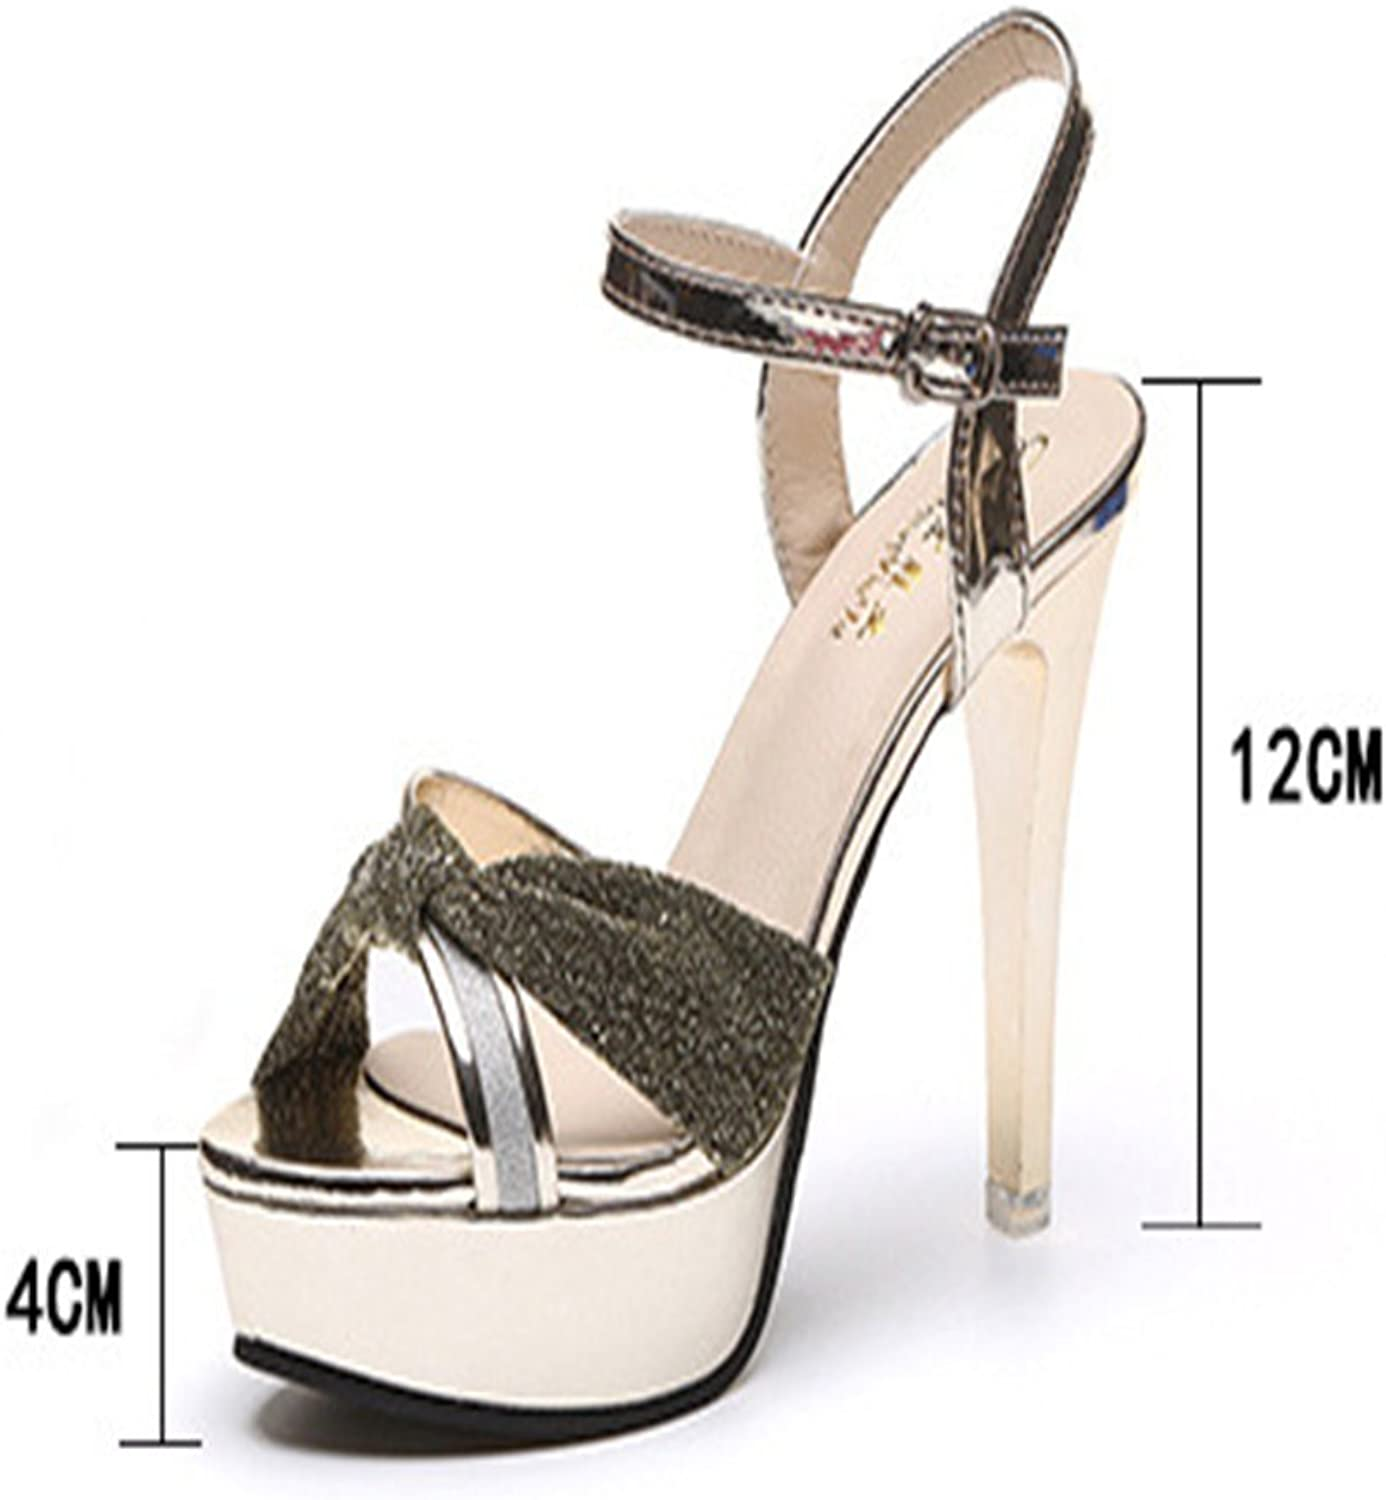 T-JULY Womens Ladies Fashion Sexy High Heels Open Toe Slip On Platform Pumps Stiletto Dress Party Wedding shoess